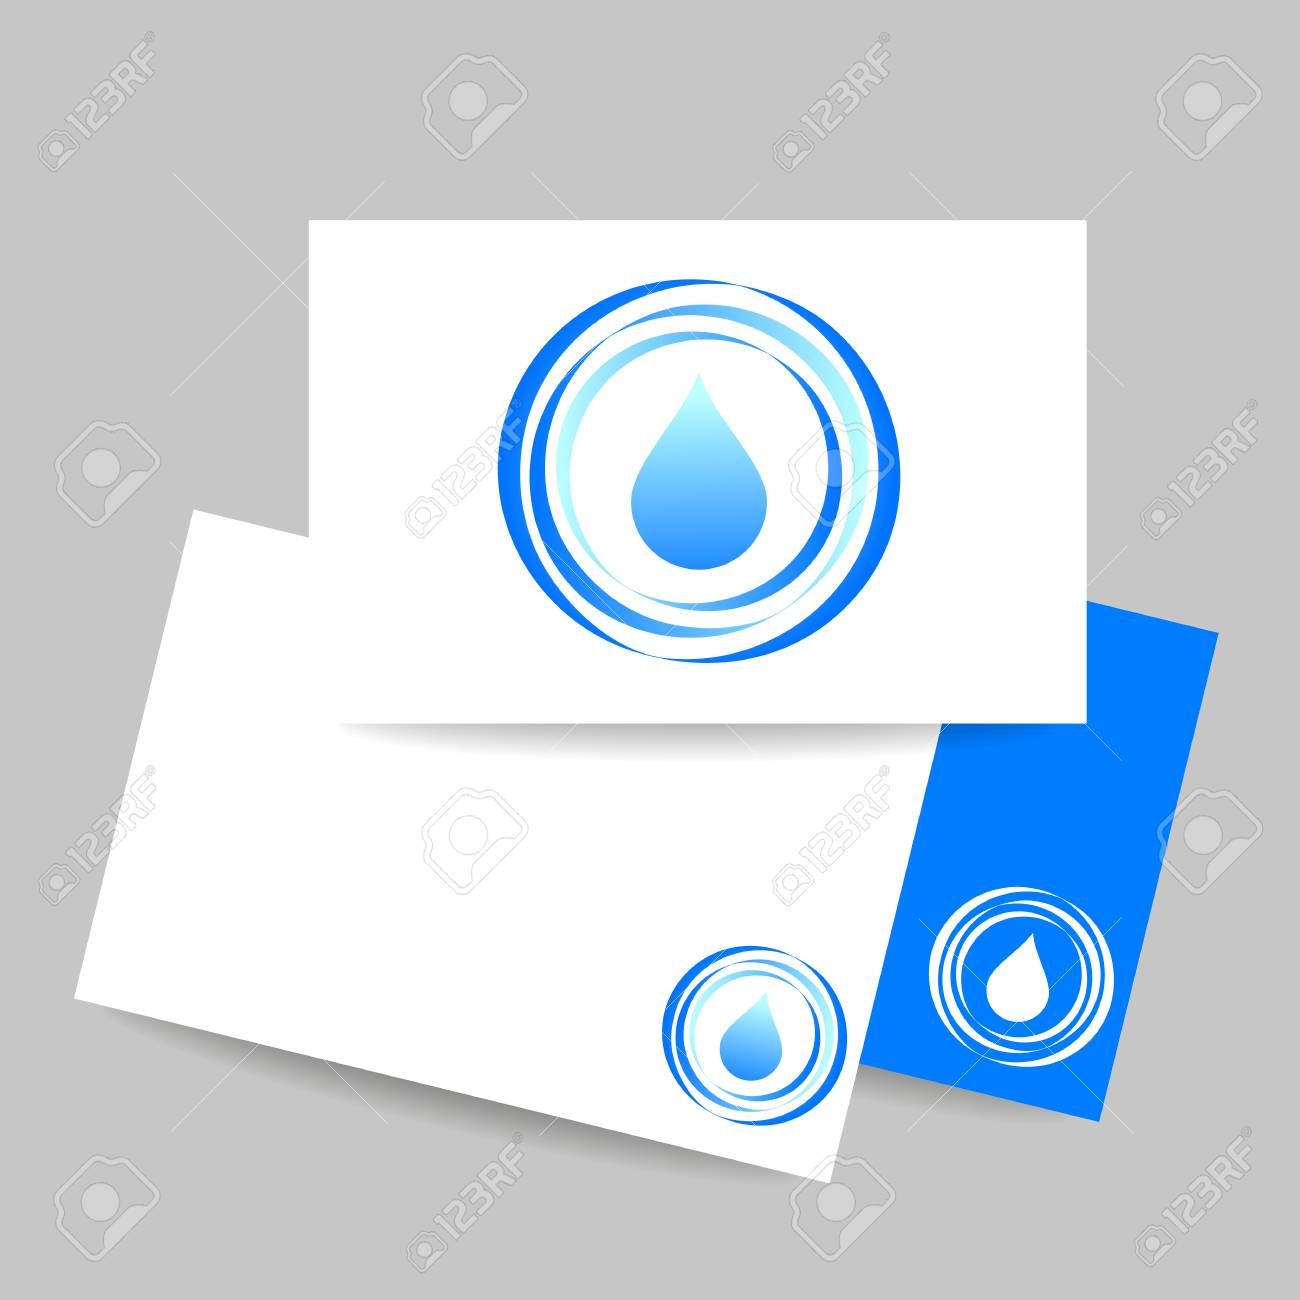 Aqua Water Drop. Concept Business Card Design For Mineral Water ...